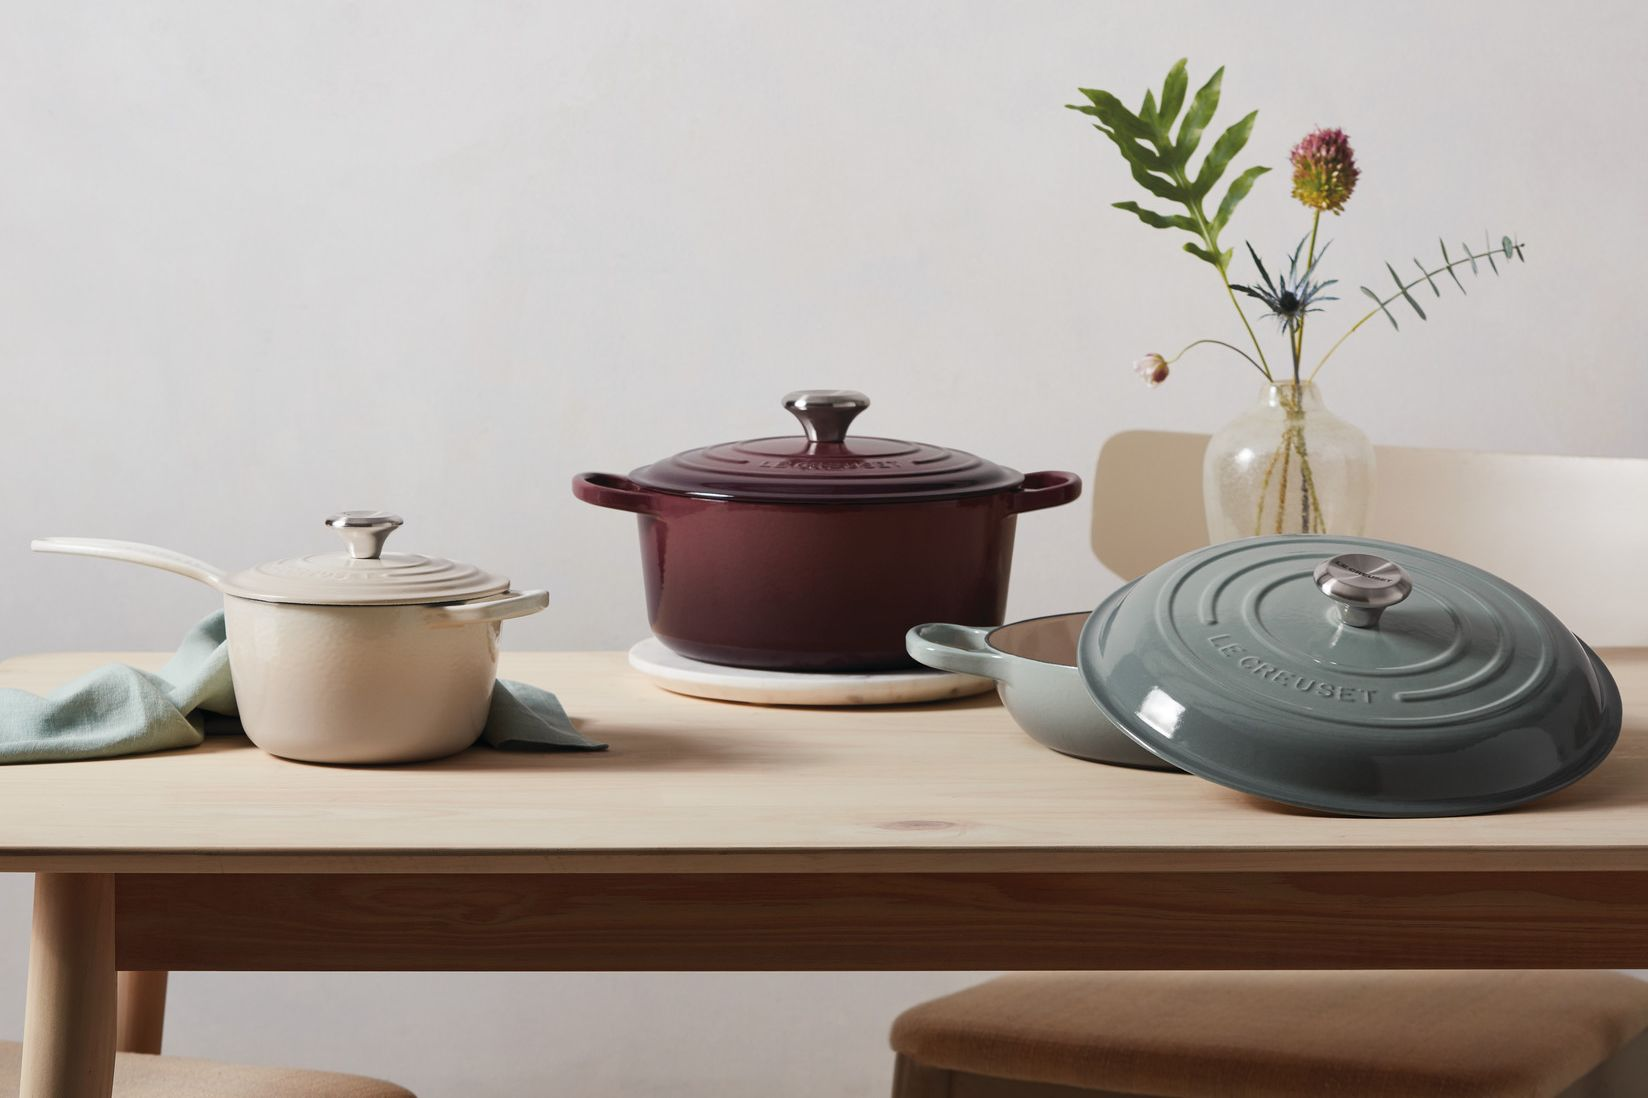 Le Creuset Launched Three New Colors, And We Can't Decide Which One We Love Most